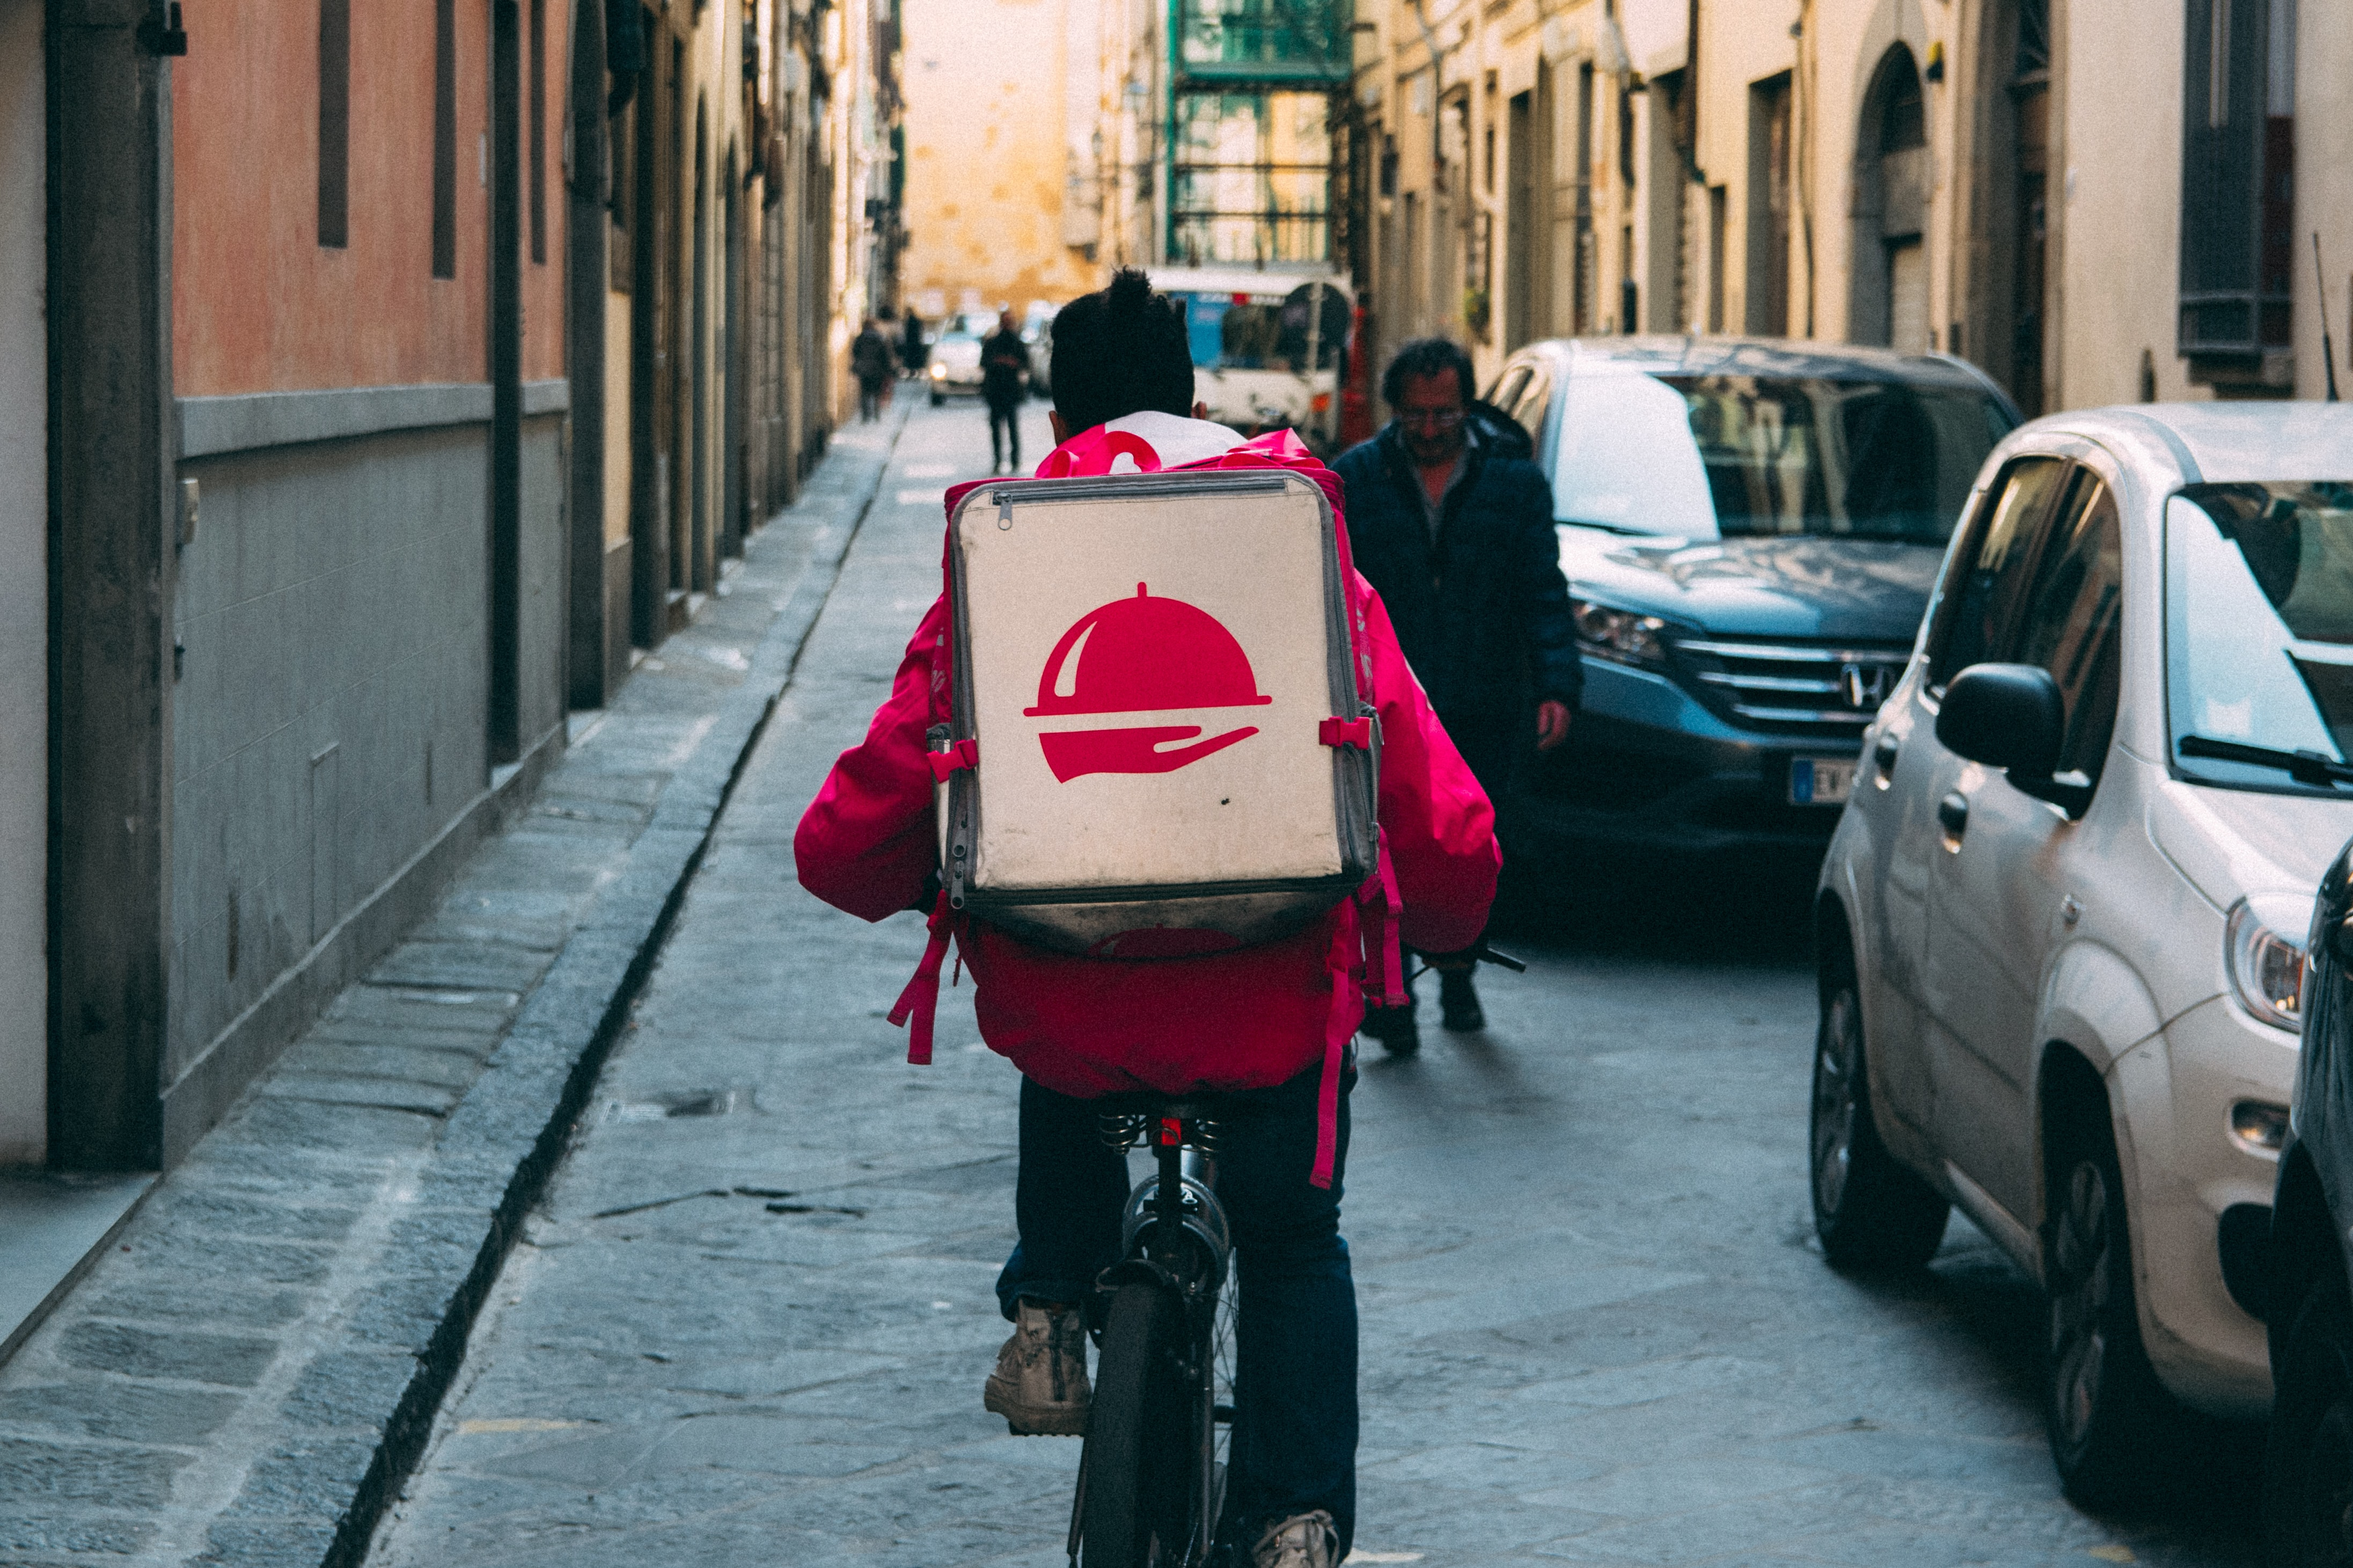 Food at your doorstep: The rise of delivery apps